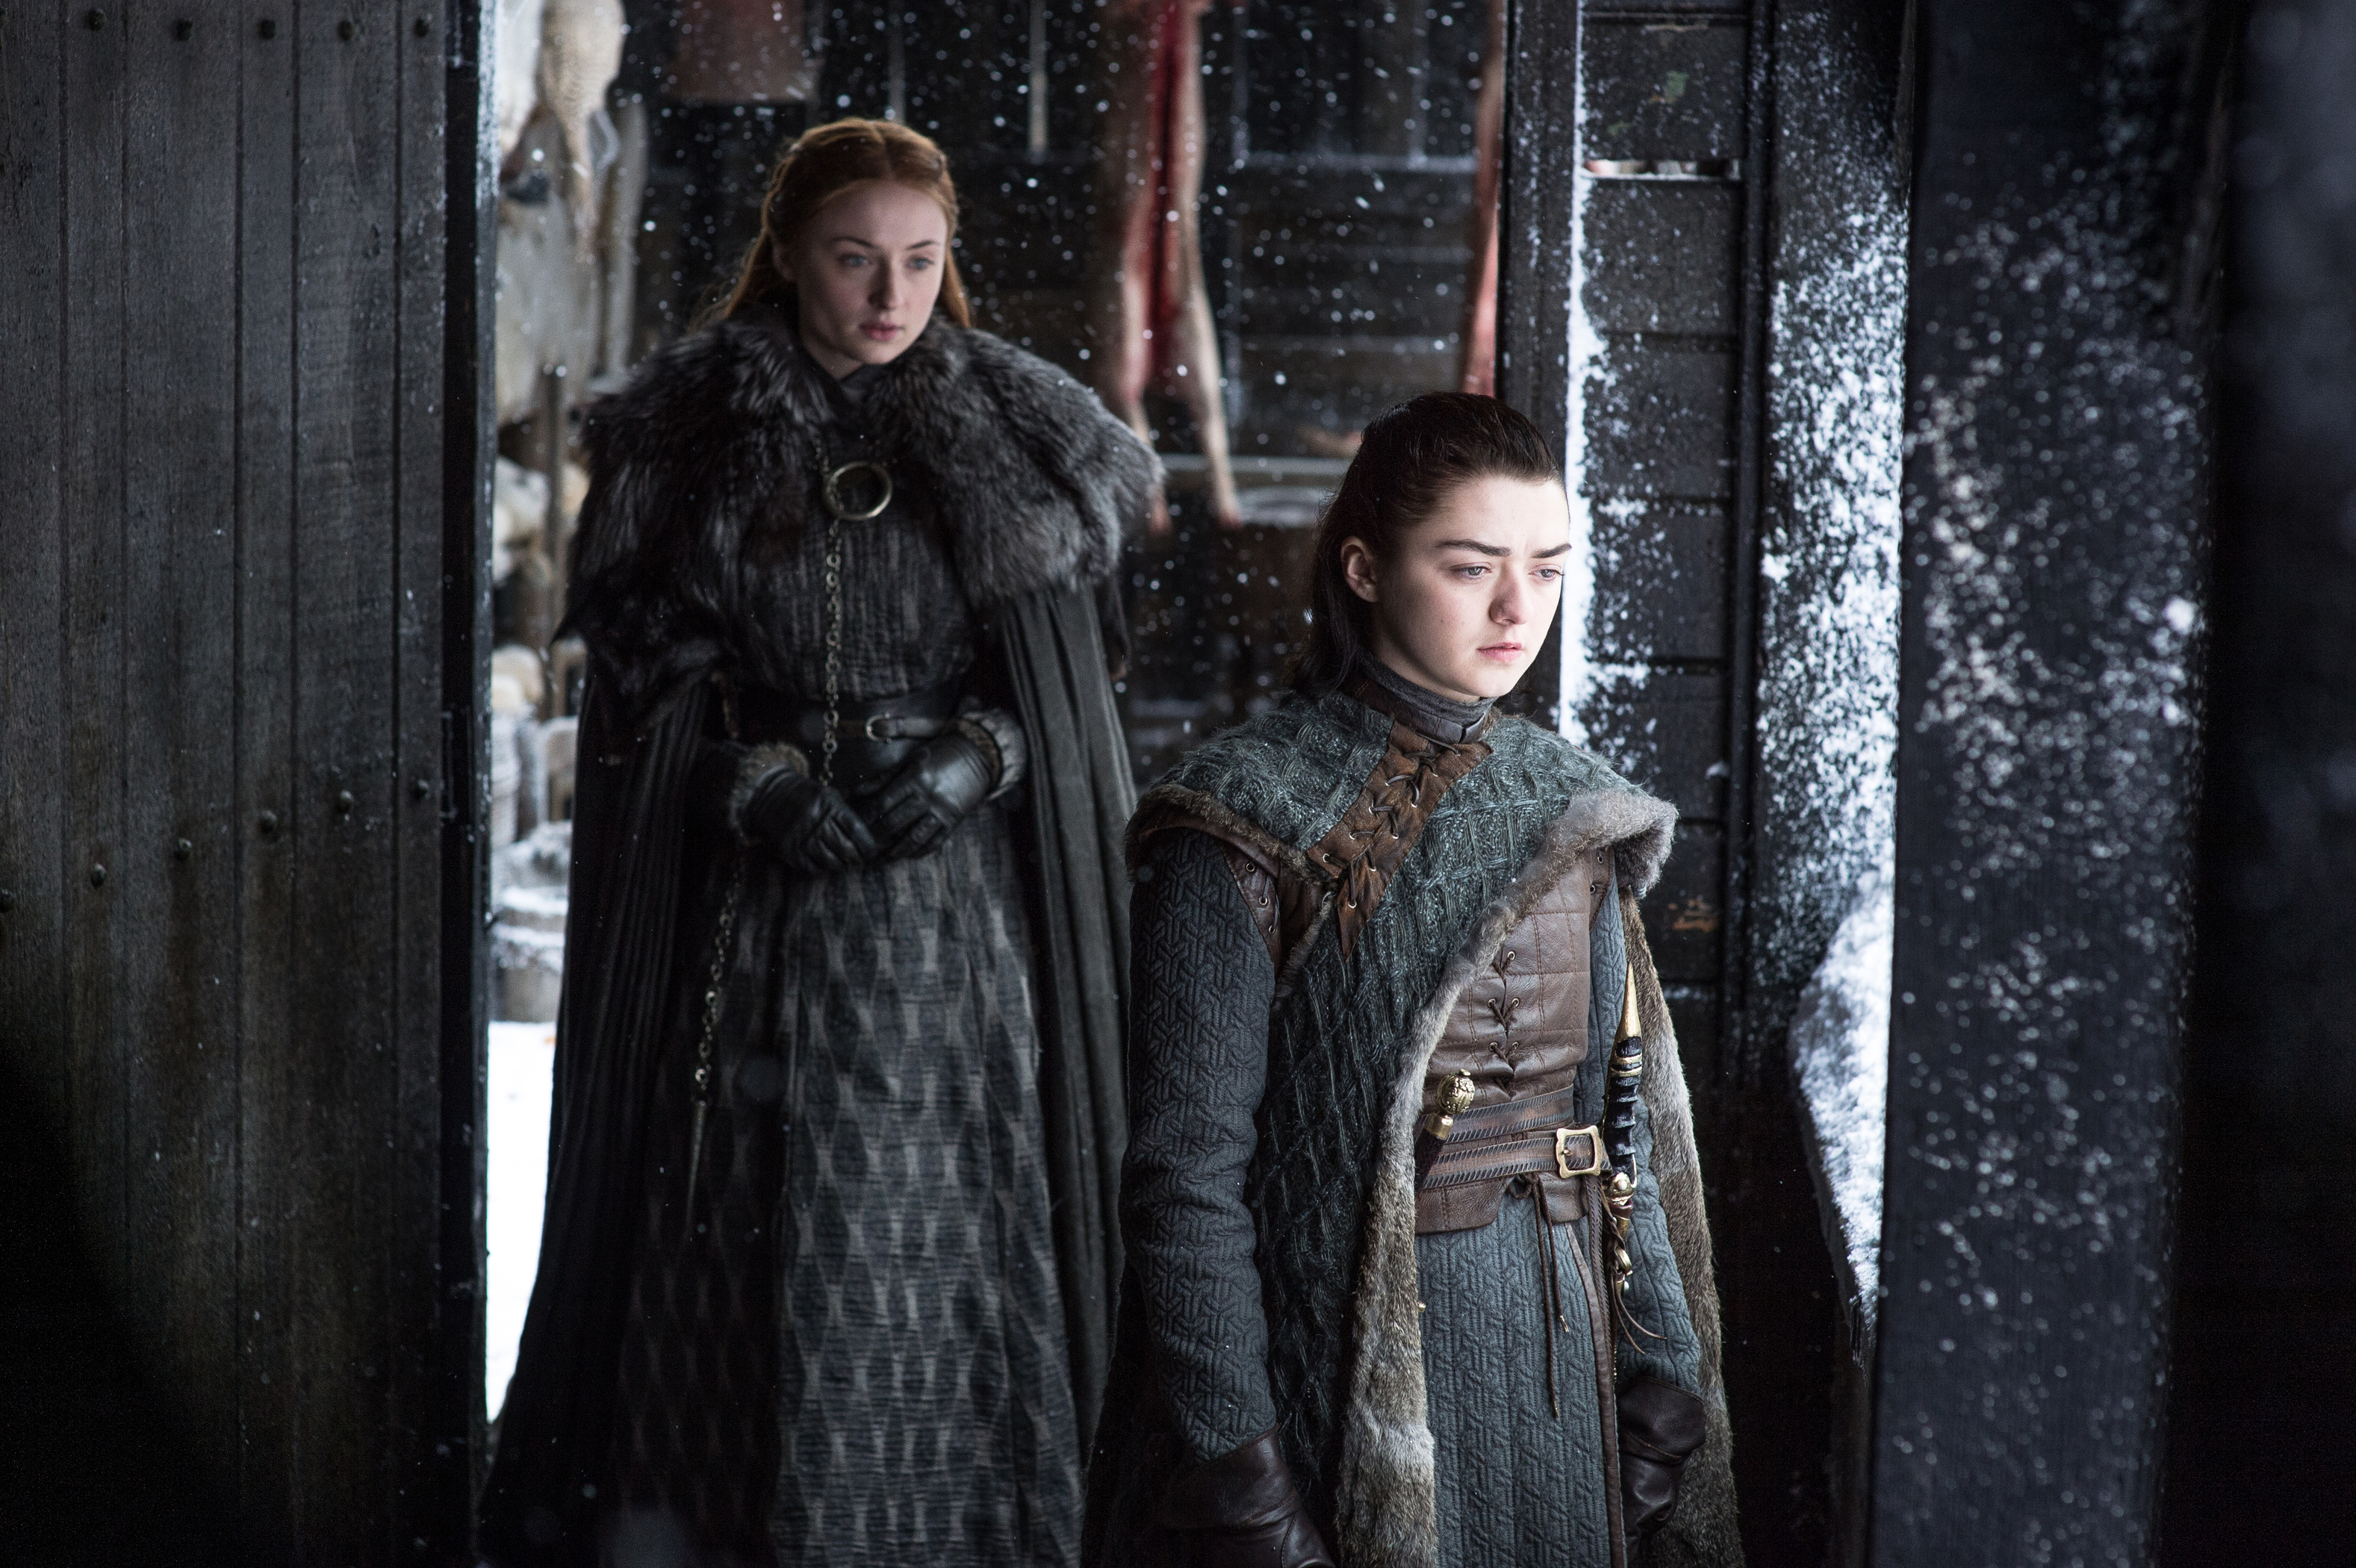 Game of Thrones raises a serious question: Where did those chains come from?